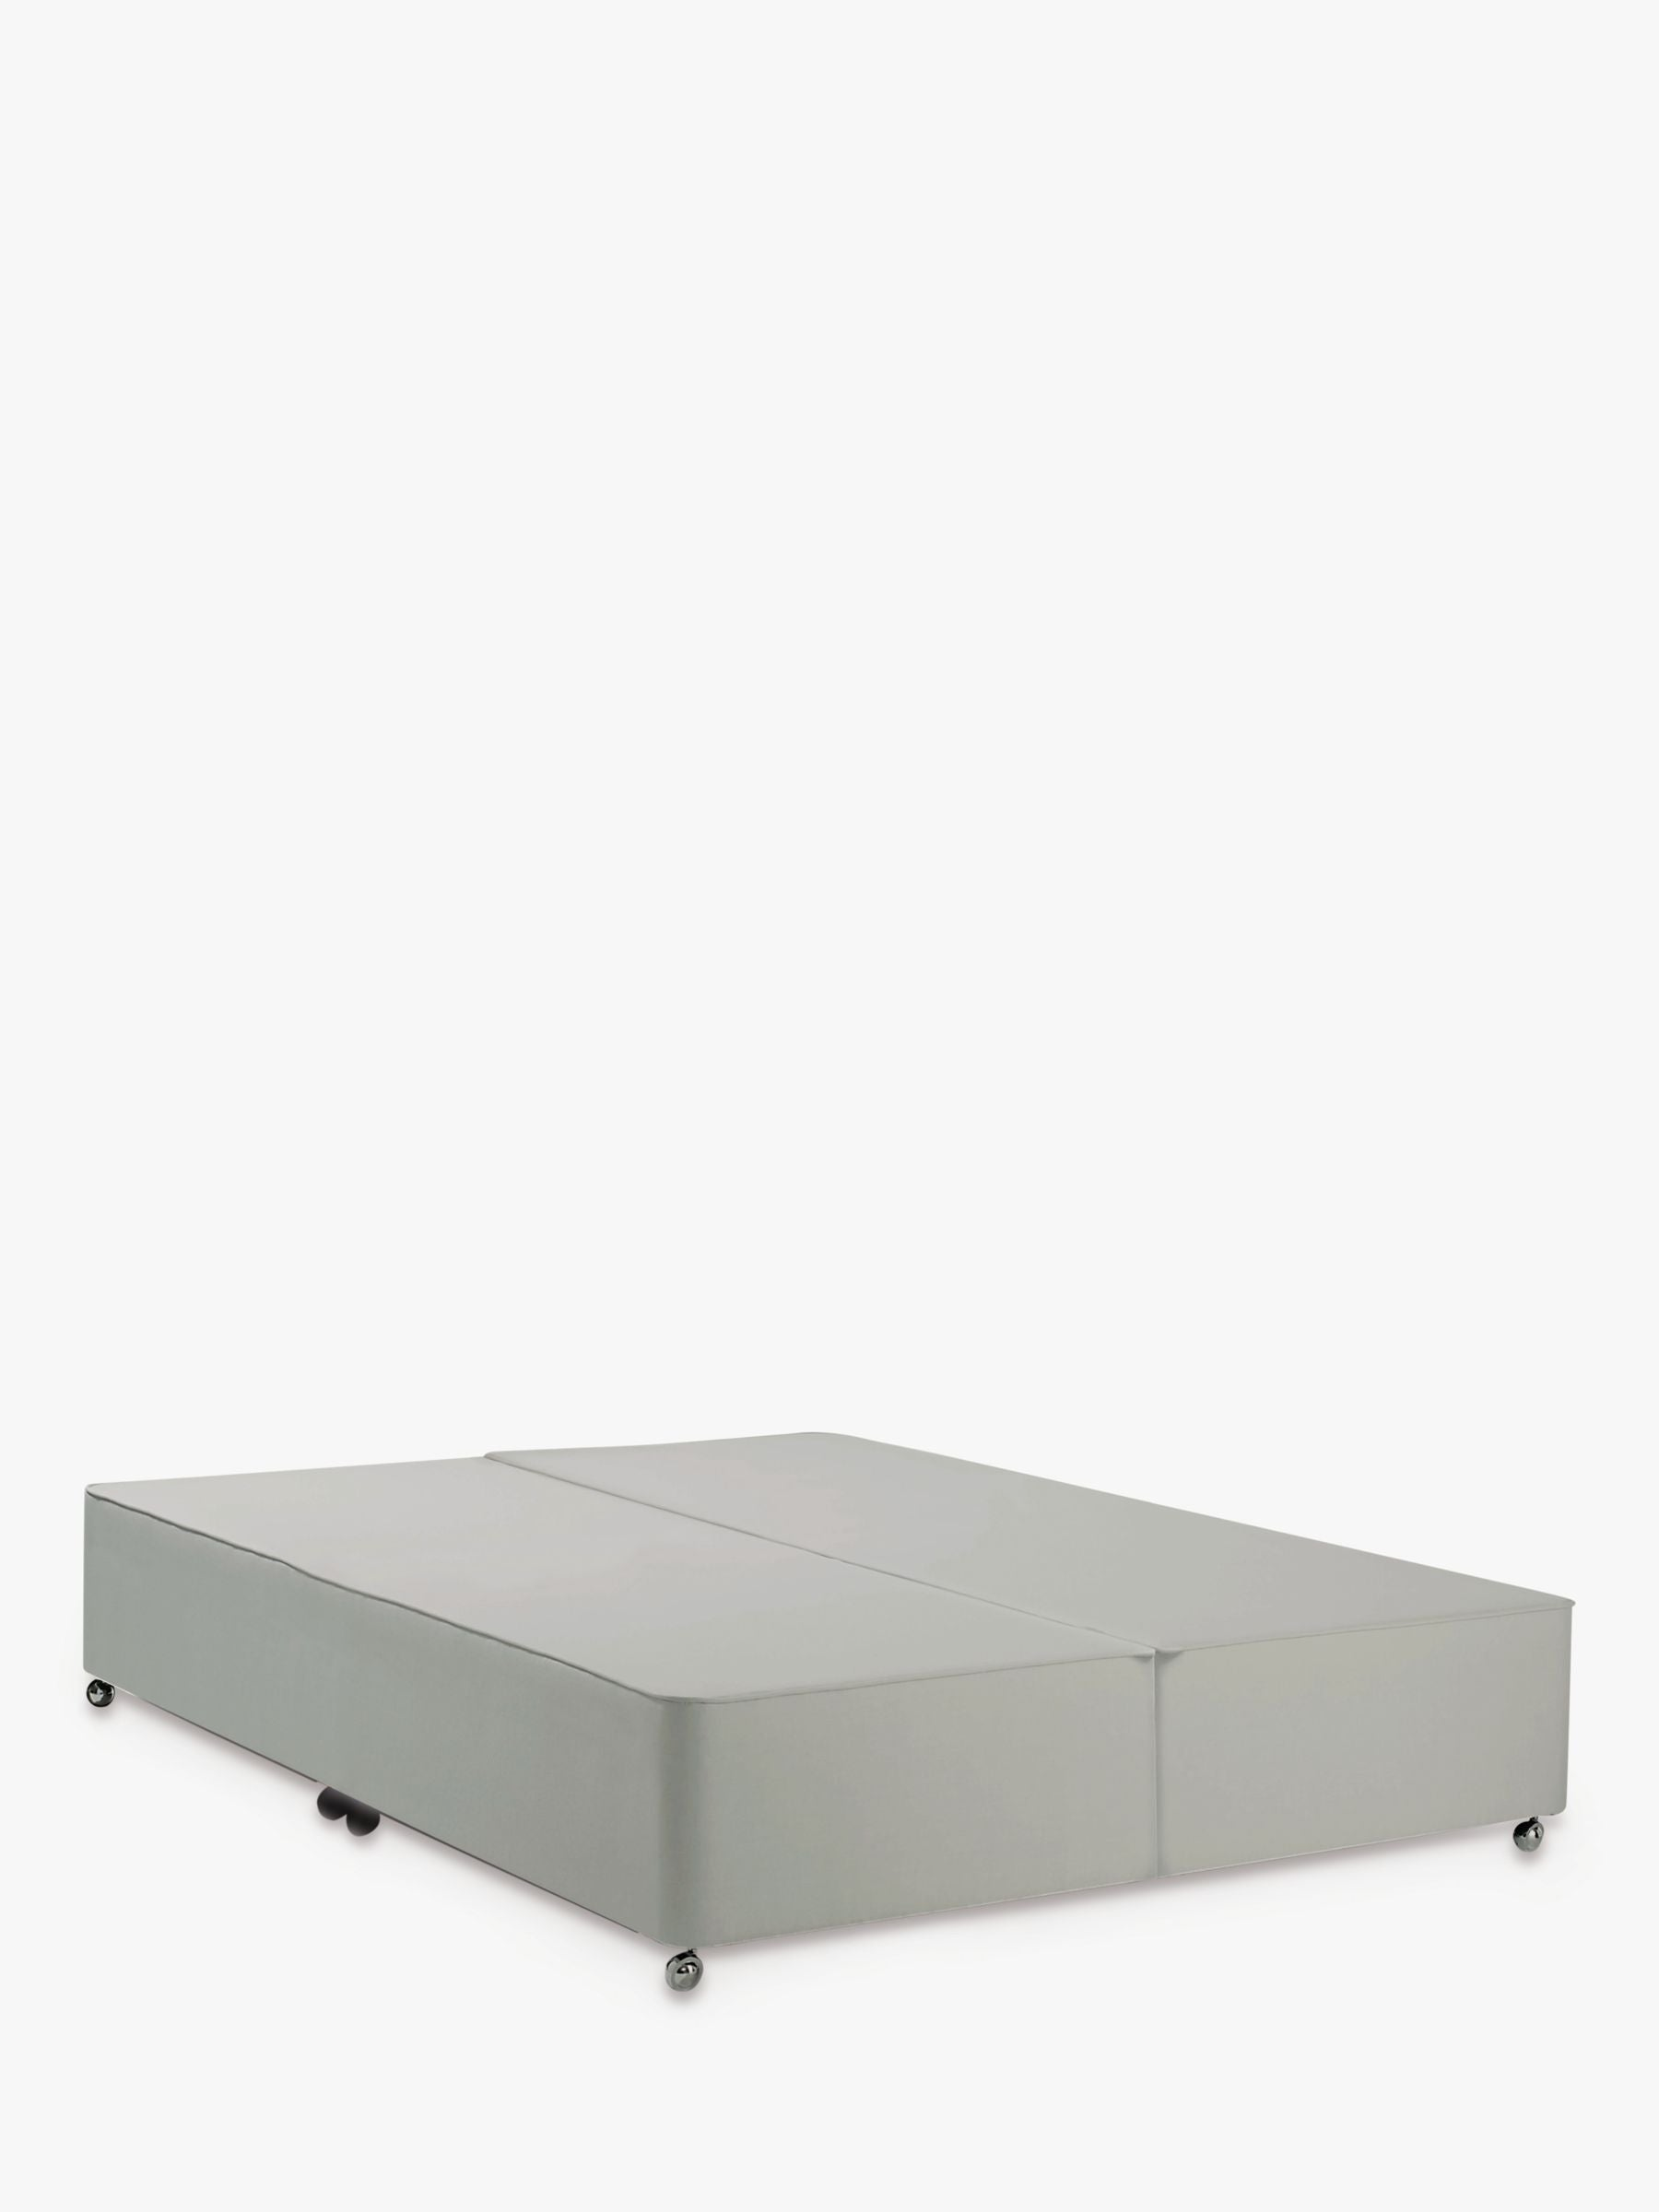 John Lewis & Partners Non-Sprung Upholstered Divan Base, Super King Size, Canvas Stone Grey, FSC-Certified (Pine)